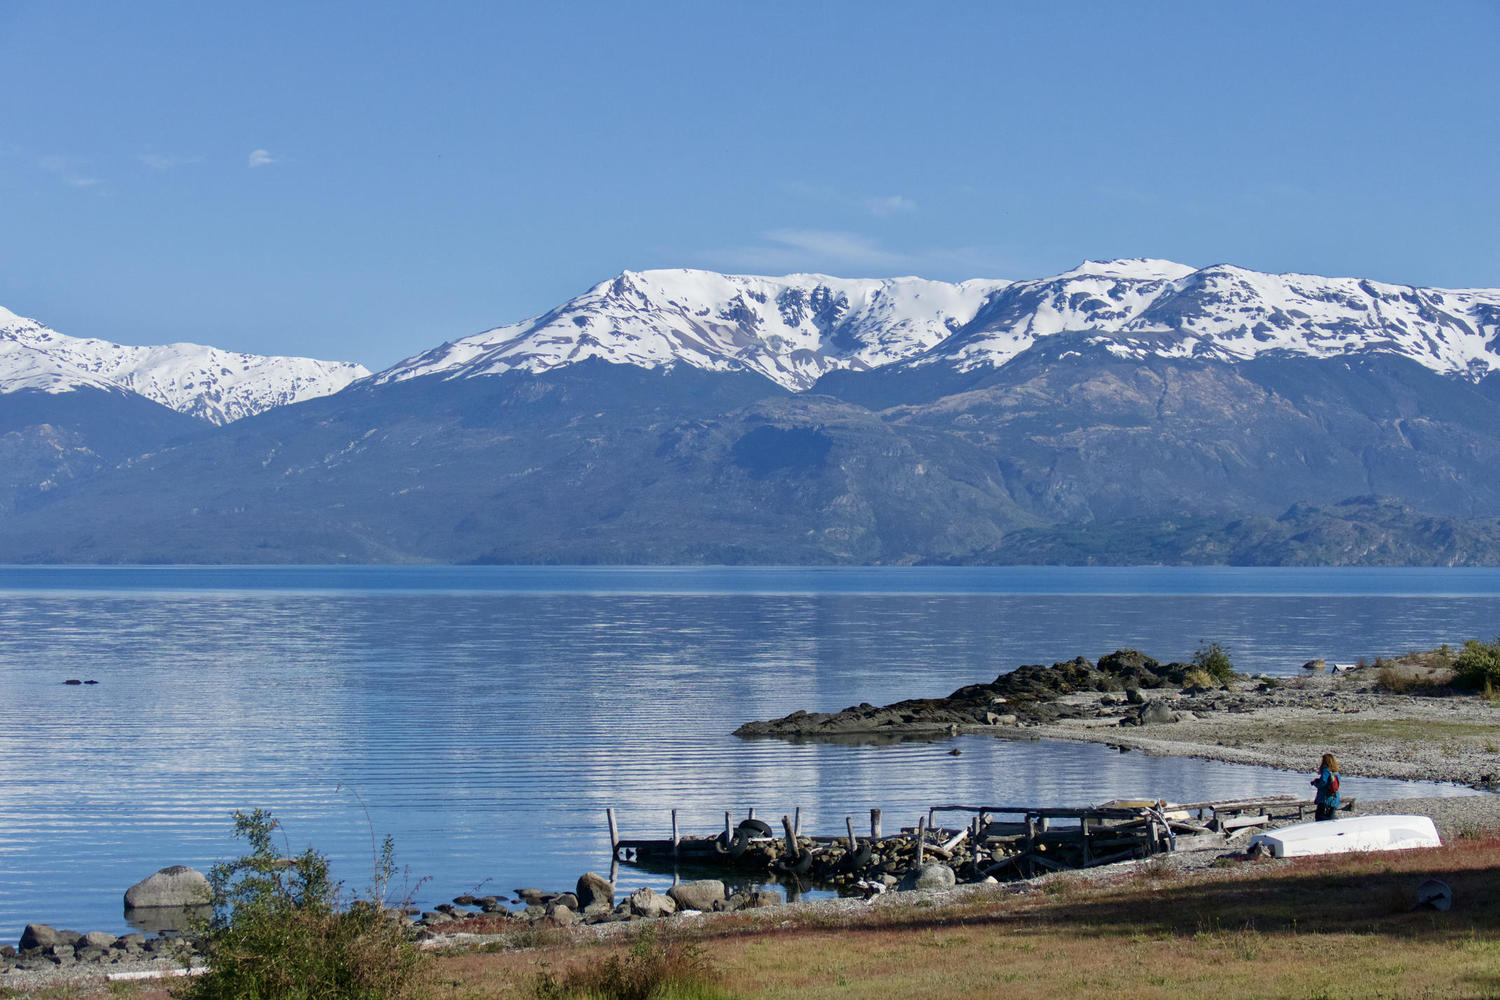 Wonderful views of the lake from Mirador Guadal, Carretera Austral